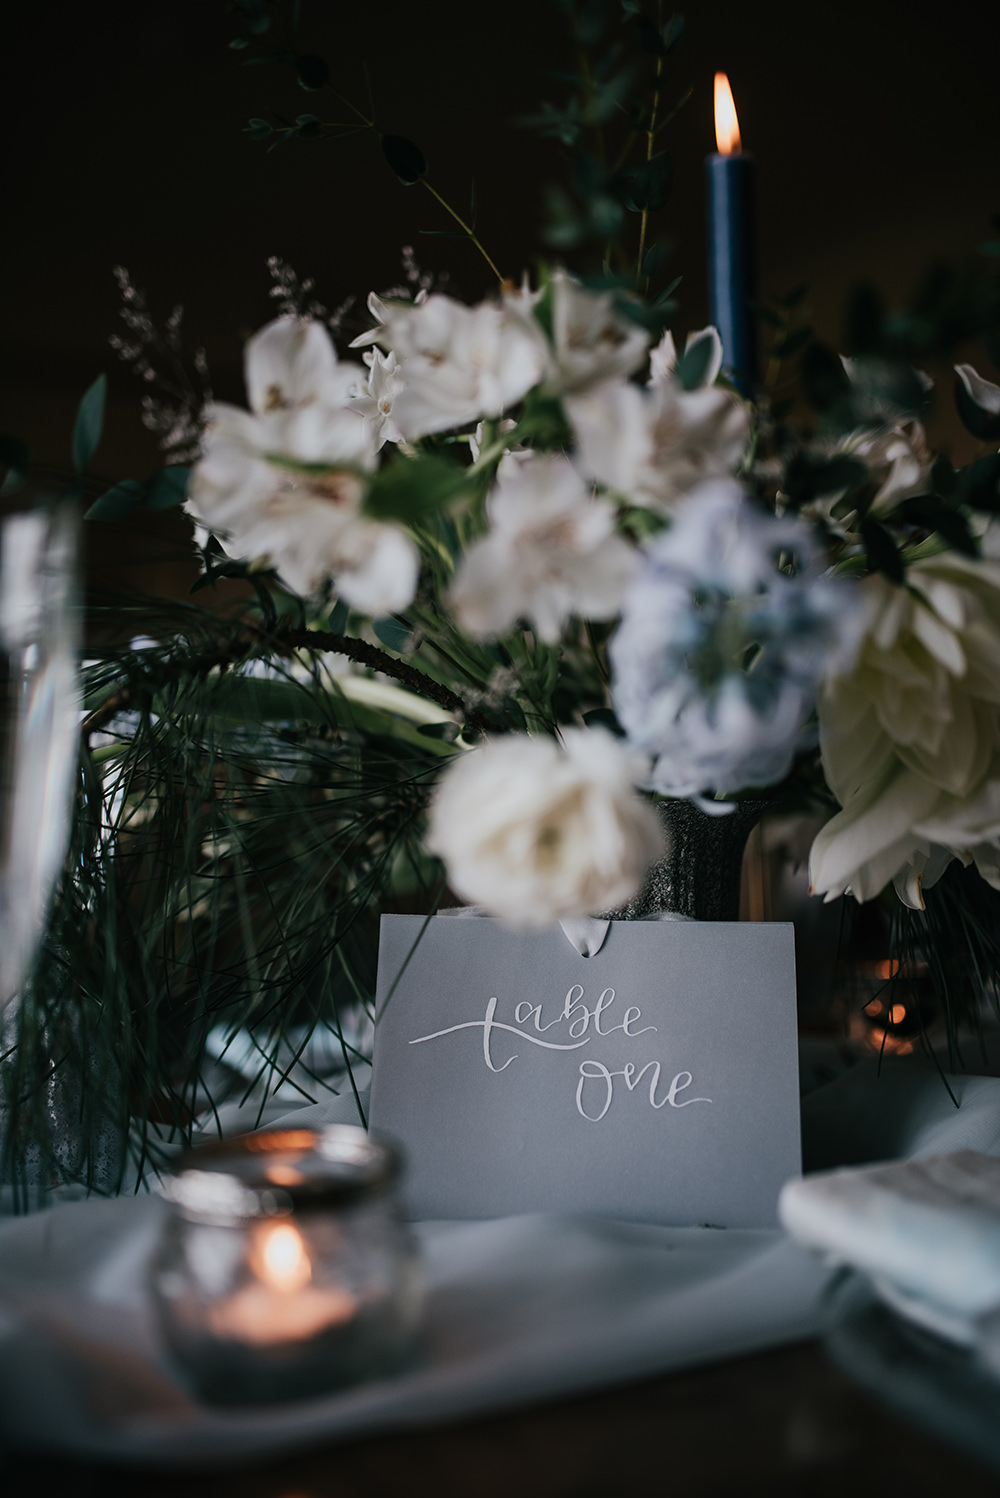 Grey White Calligraphy Table Name Number Blue Wedding Ideas Emma McNair Photography